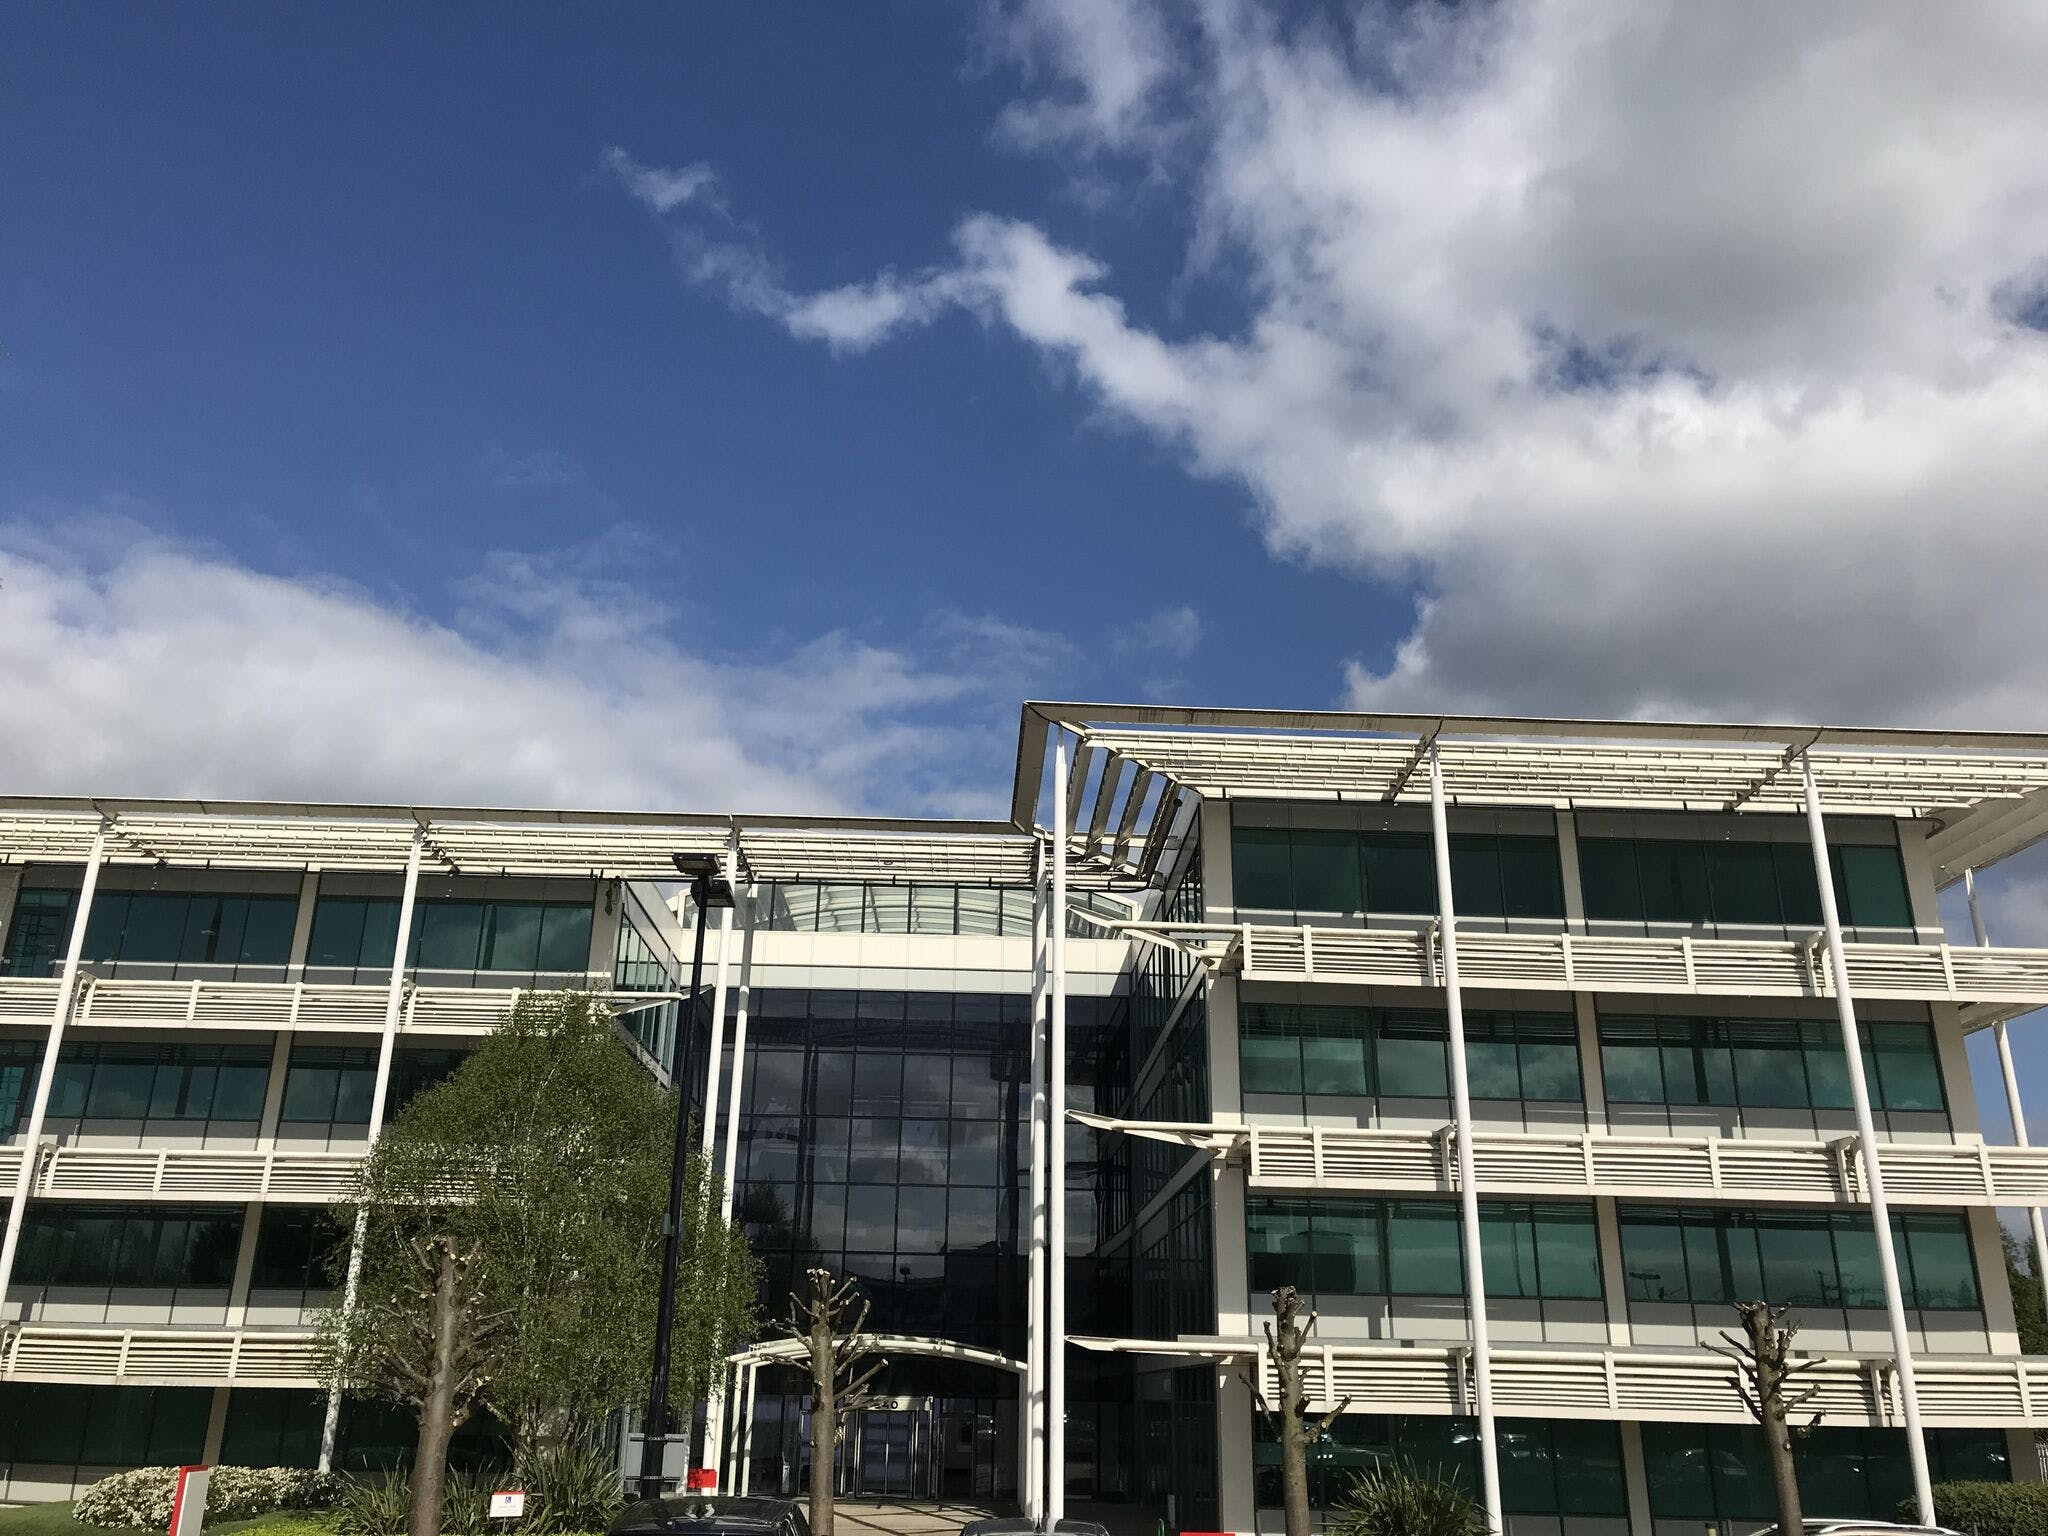 540 Thames Valley Park, Reading